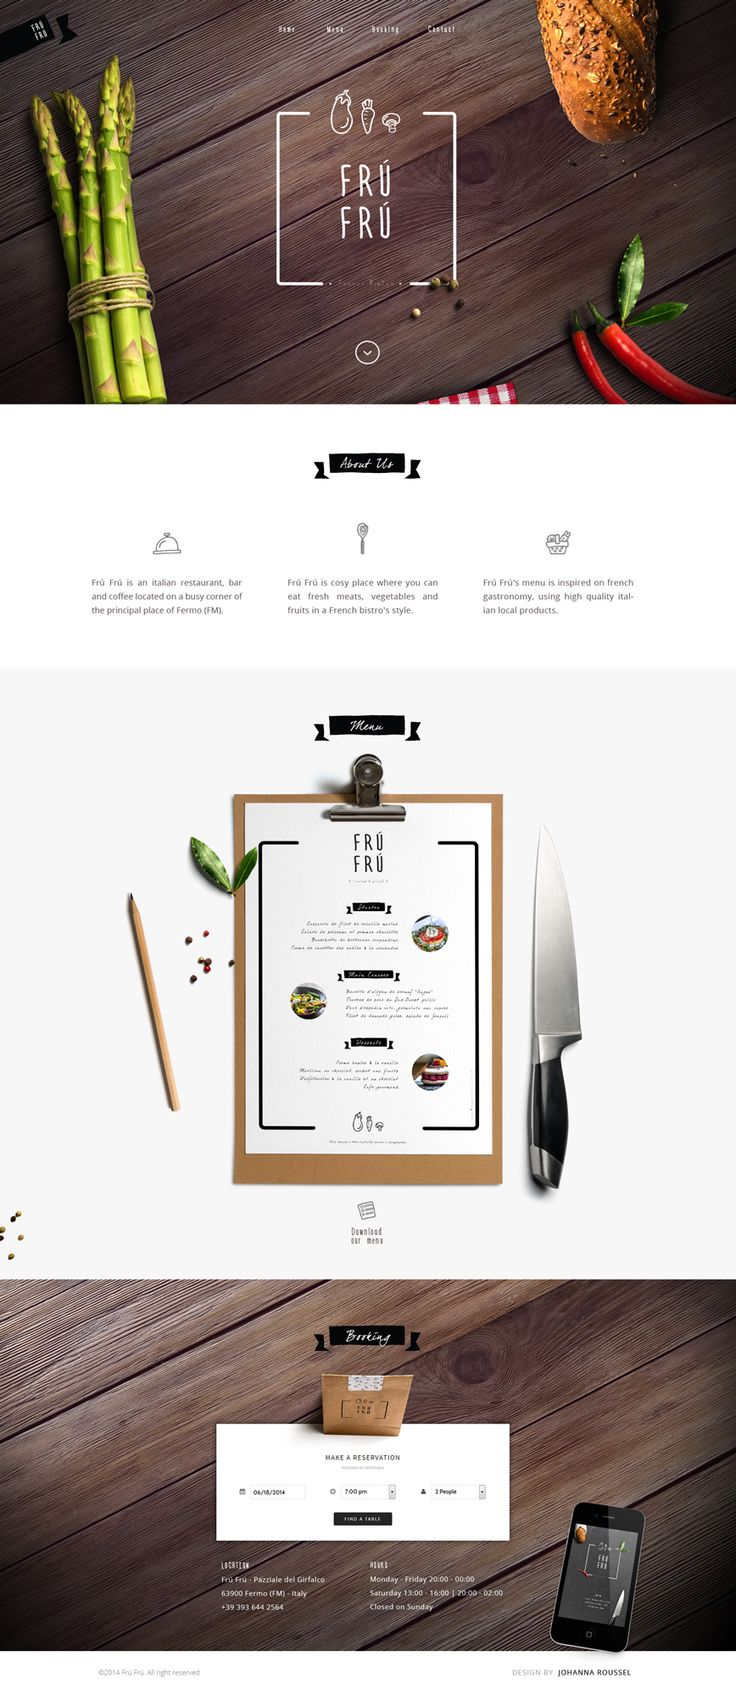 15 best Logo images on Pinterest | Graphics, Corporate identity and ...